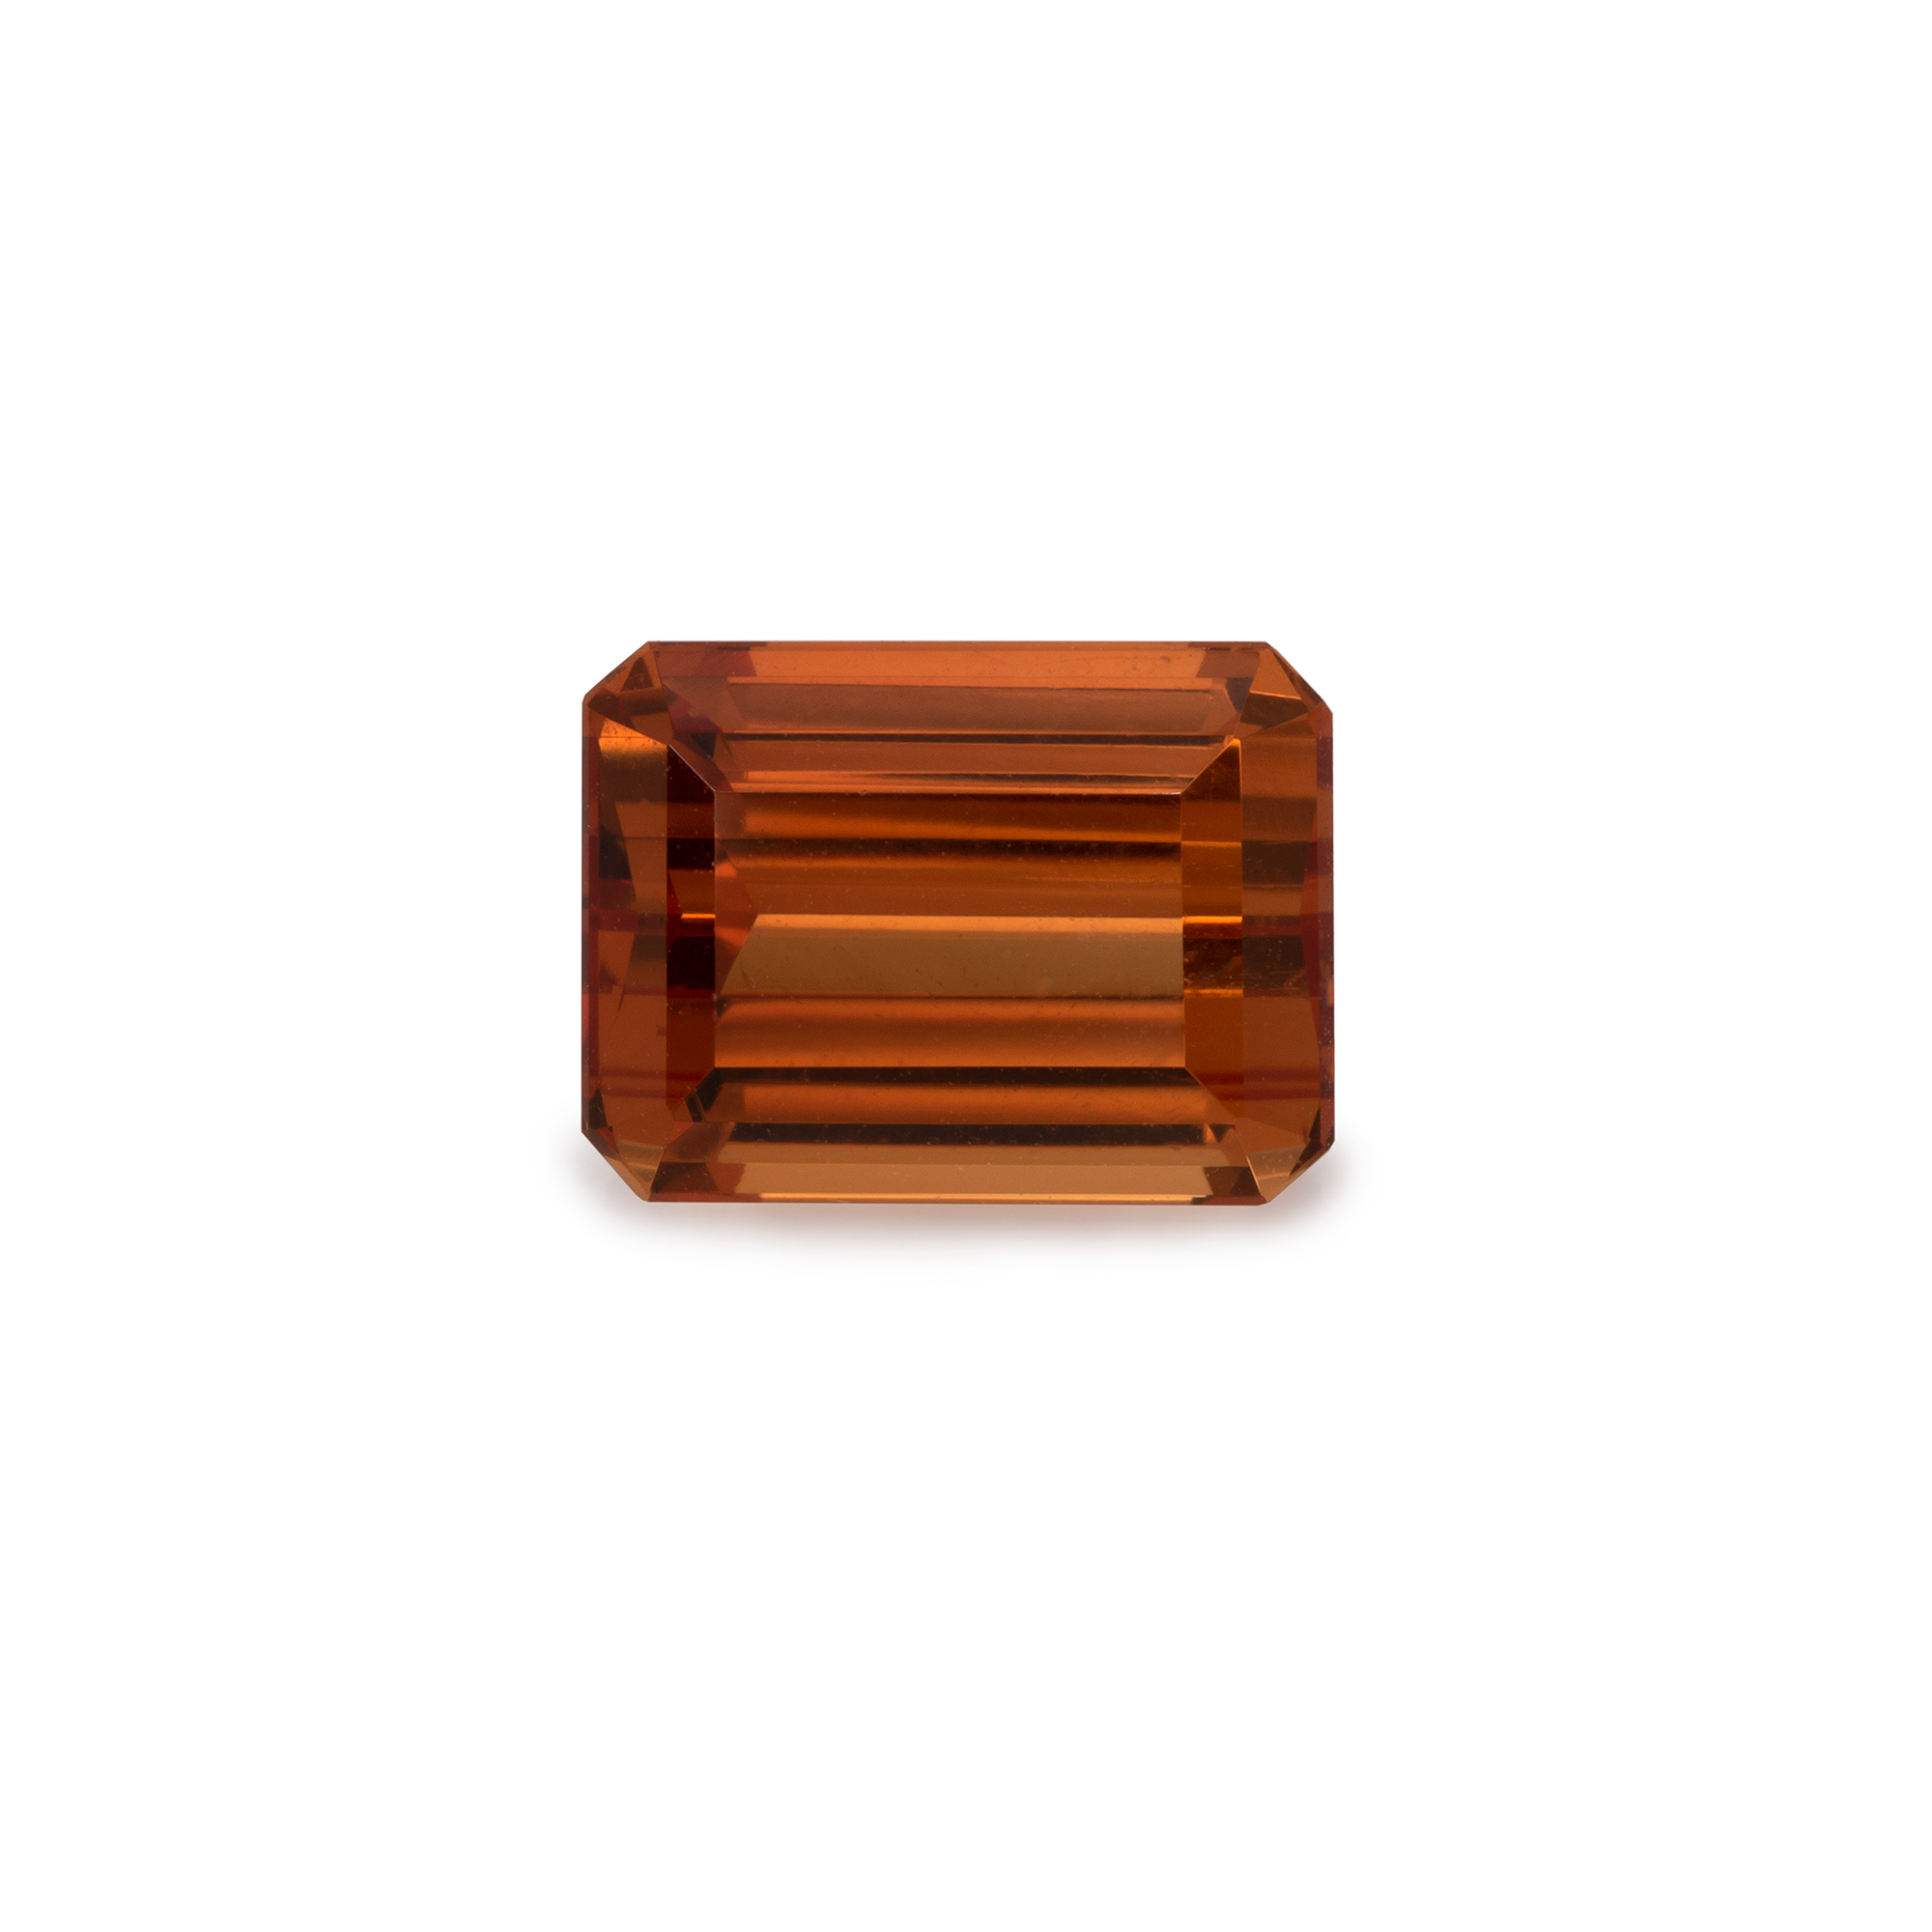 Mandarin Granat - orange, achteck, 8x6 mm, 2,3-2,55 cts, Nr. MG15002